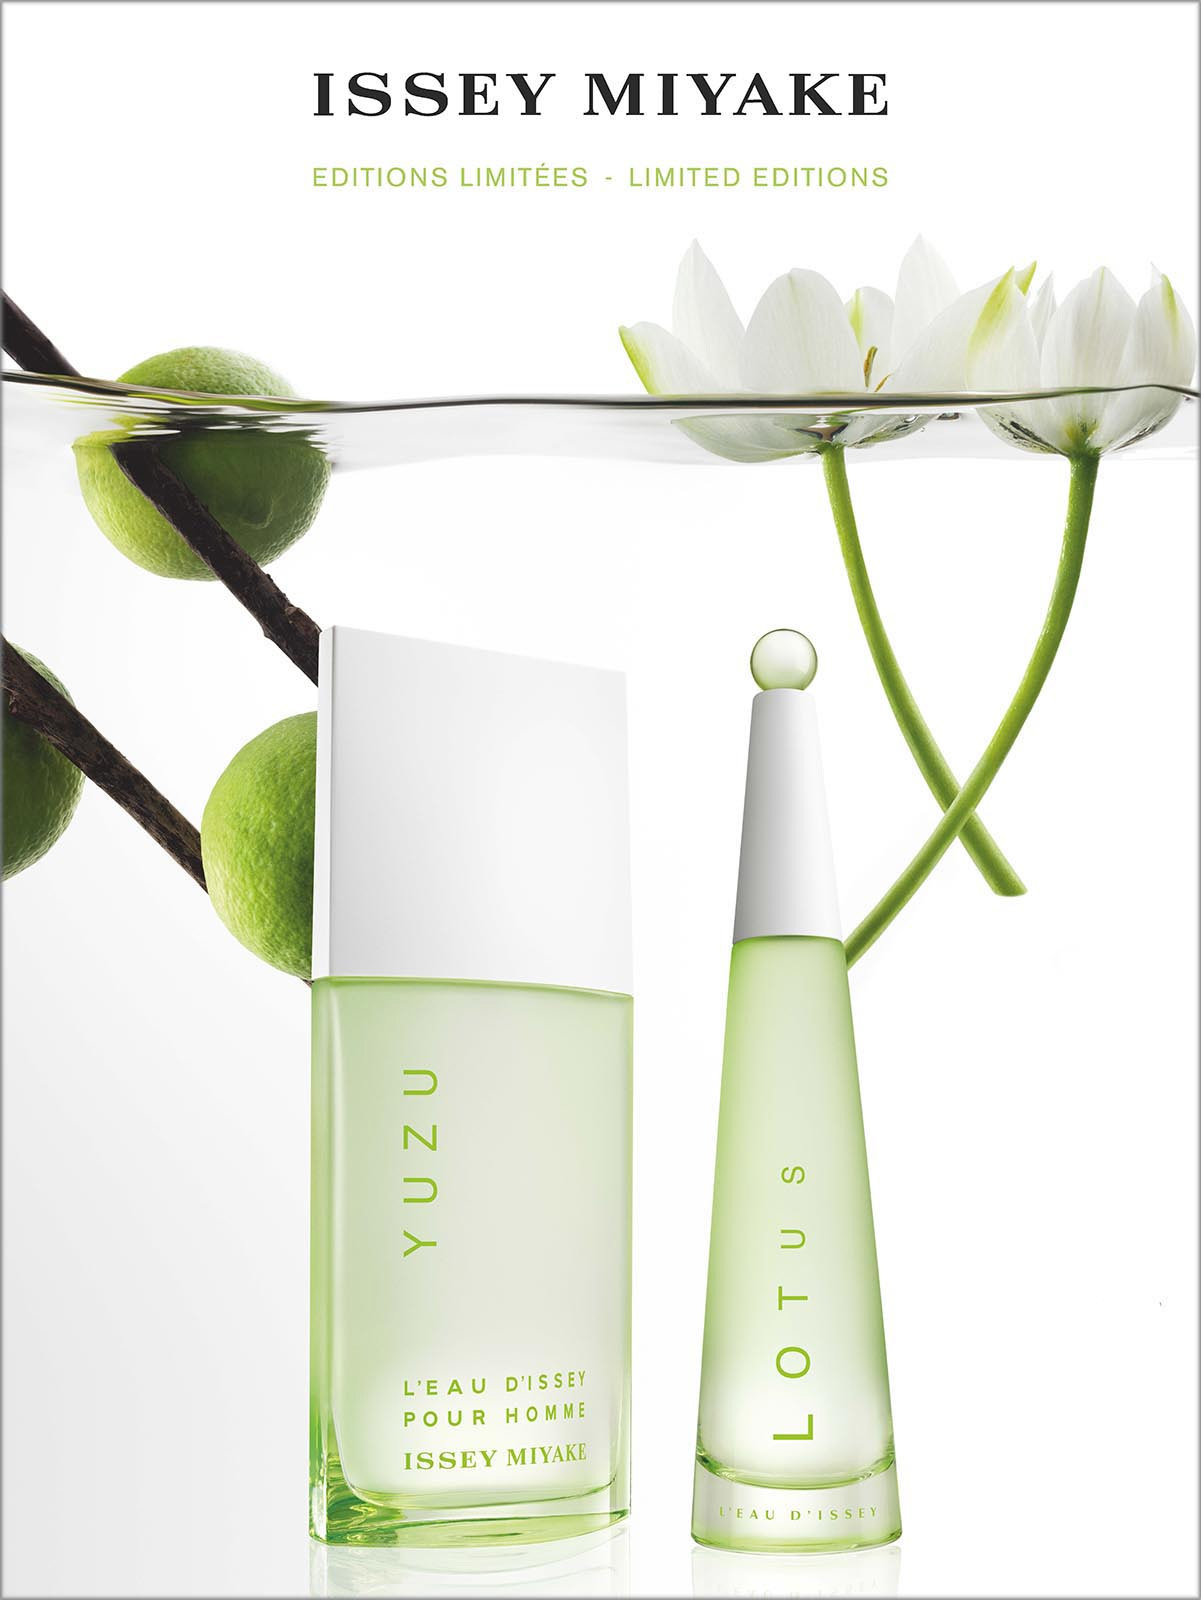 Leau dissey lotus issey miyake perfume a fragrance for women 2014 leau dissey lotus issey miyake for women pictures izmirmasajfo